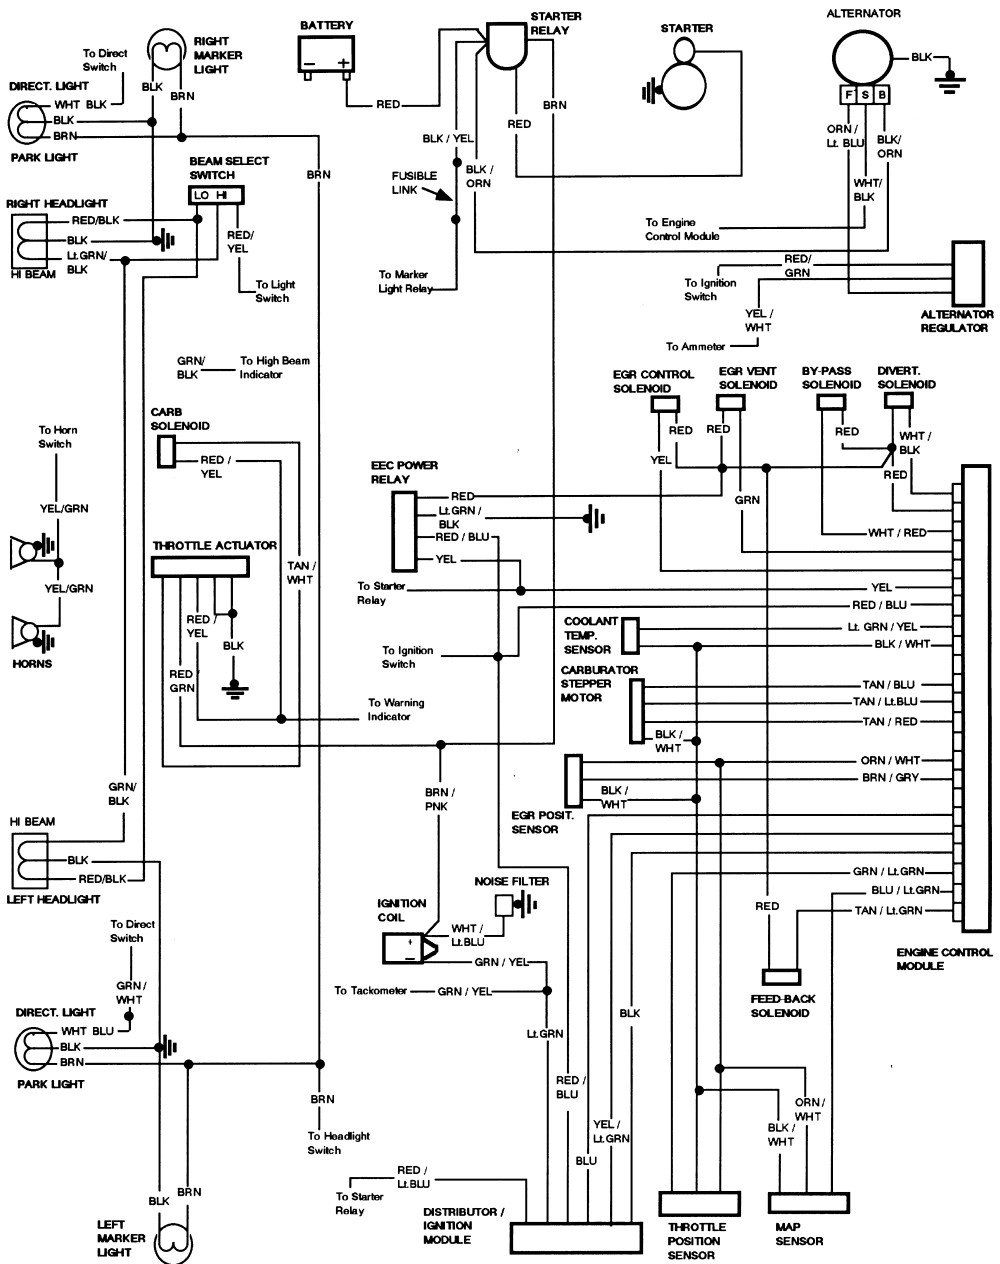 Ford F350 Wiring Diagram Free Wiring Diagram Collection For Ford F350 Wiring Diagram Free Ford F250 Ford F150 Ford Truck